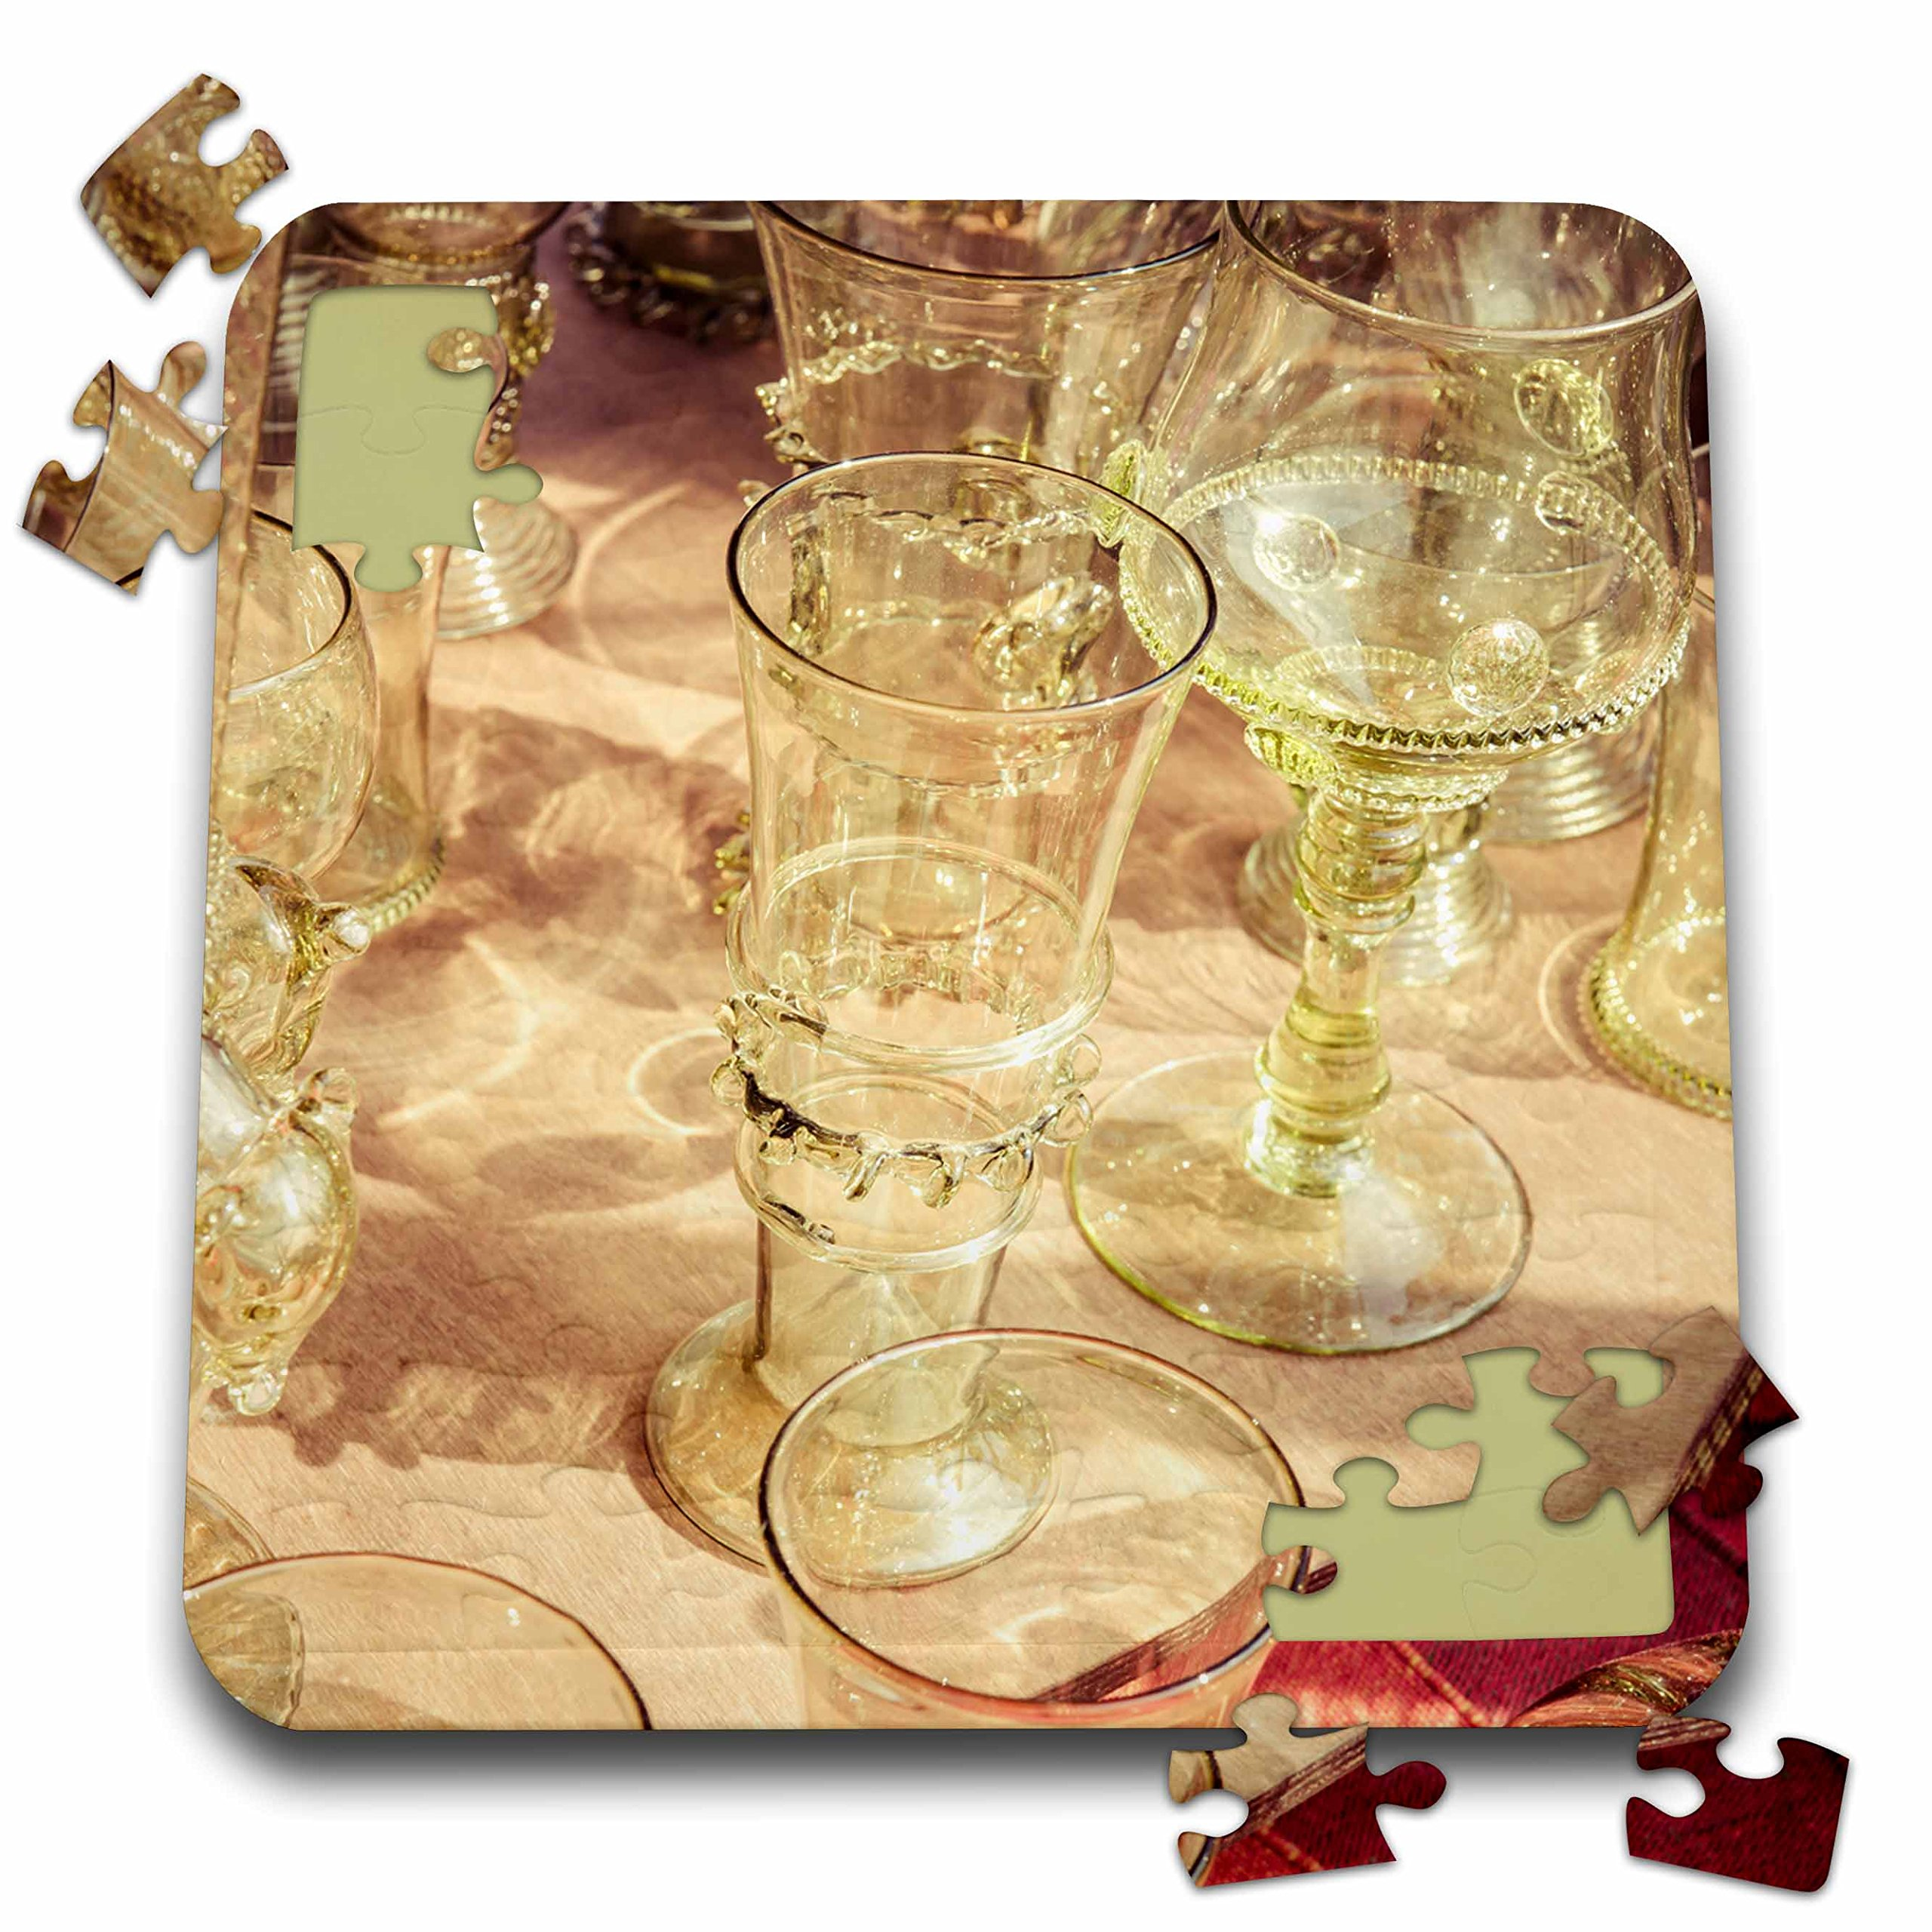 3dRose Alexis Photography - Objects - Beautiful vintage wine glasses. Stylized photo - 10x10 Inch Puzzle (pzl_270825_2)